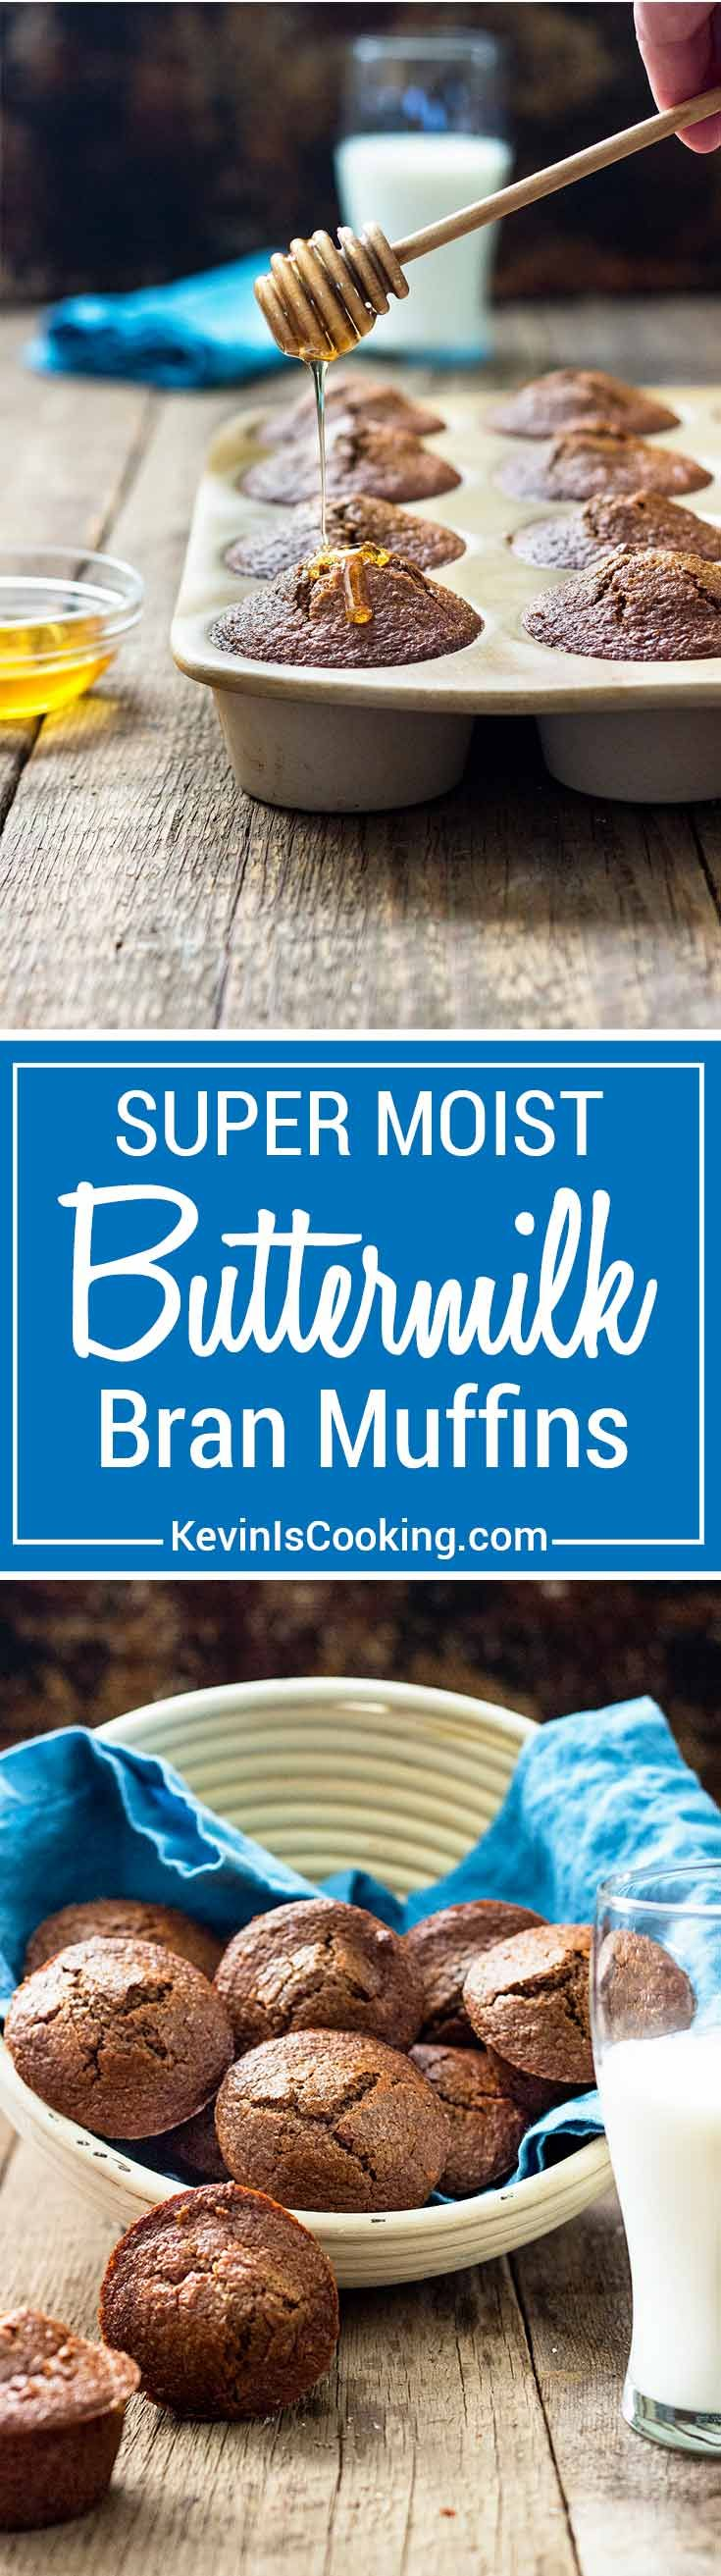 These Super Moist Bran Muffins are dense, great for breakfast with coffee and some fruit. Drizzle honey on top! Buttermilk and Apple Butter are the secret! Your family will love these.